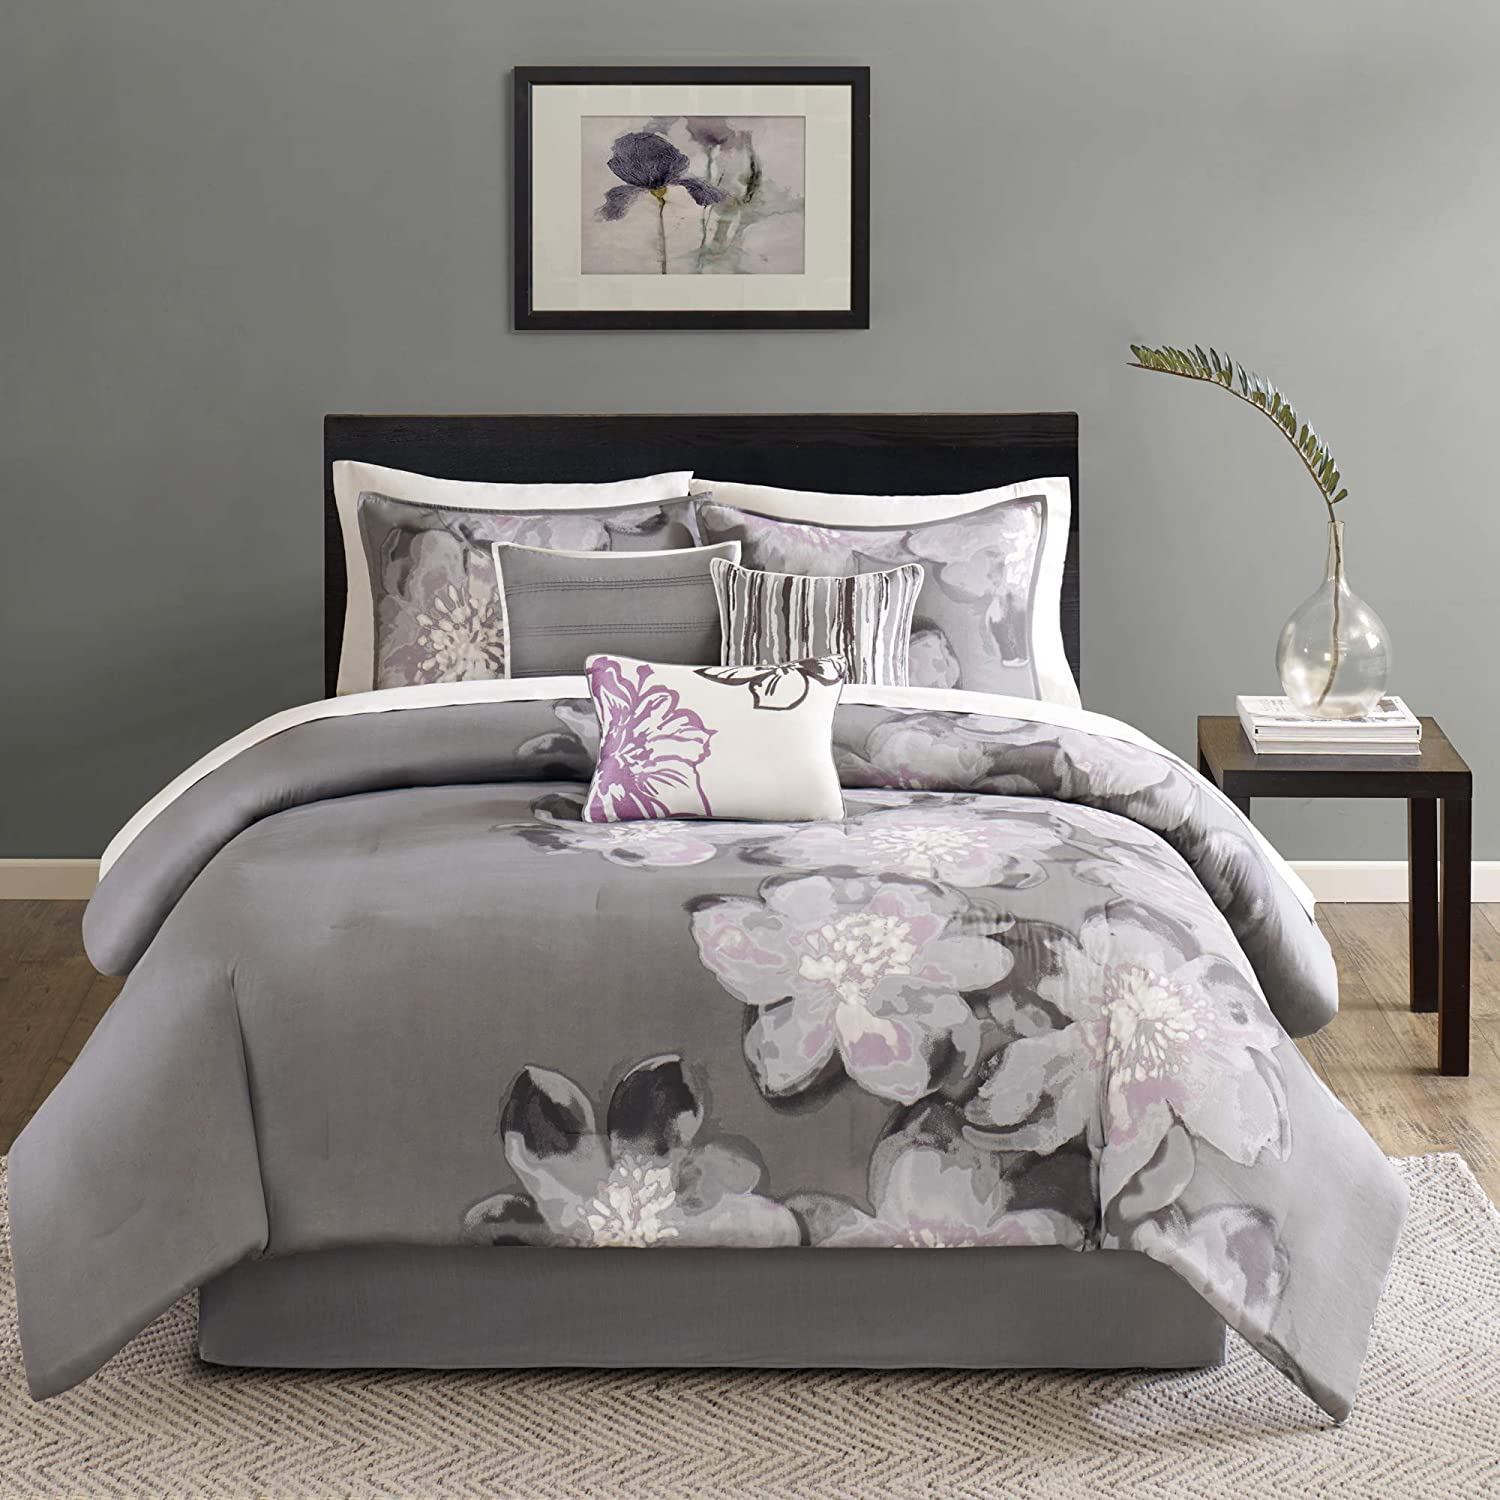 """Madison Park Cozy Comforter Nature Scenery Design All Season, Matching Bed Skirt, Decorative Pillows, Queen(90""""x90""""), Serena, Floral Grey, 7 Piece"""